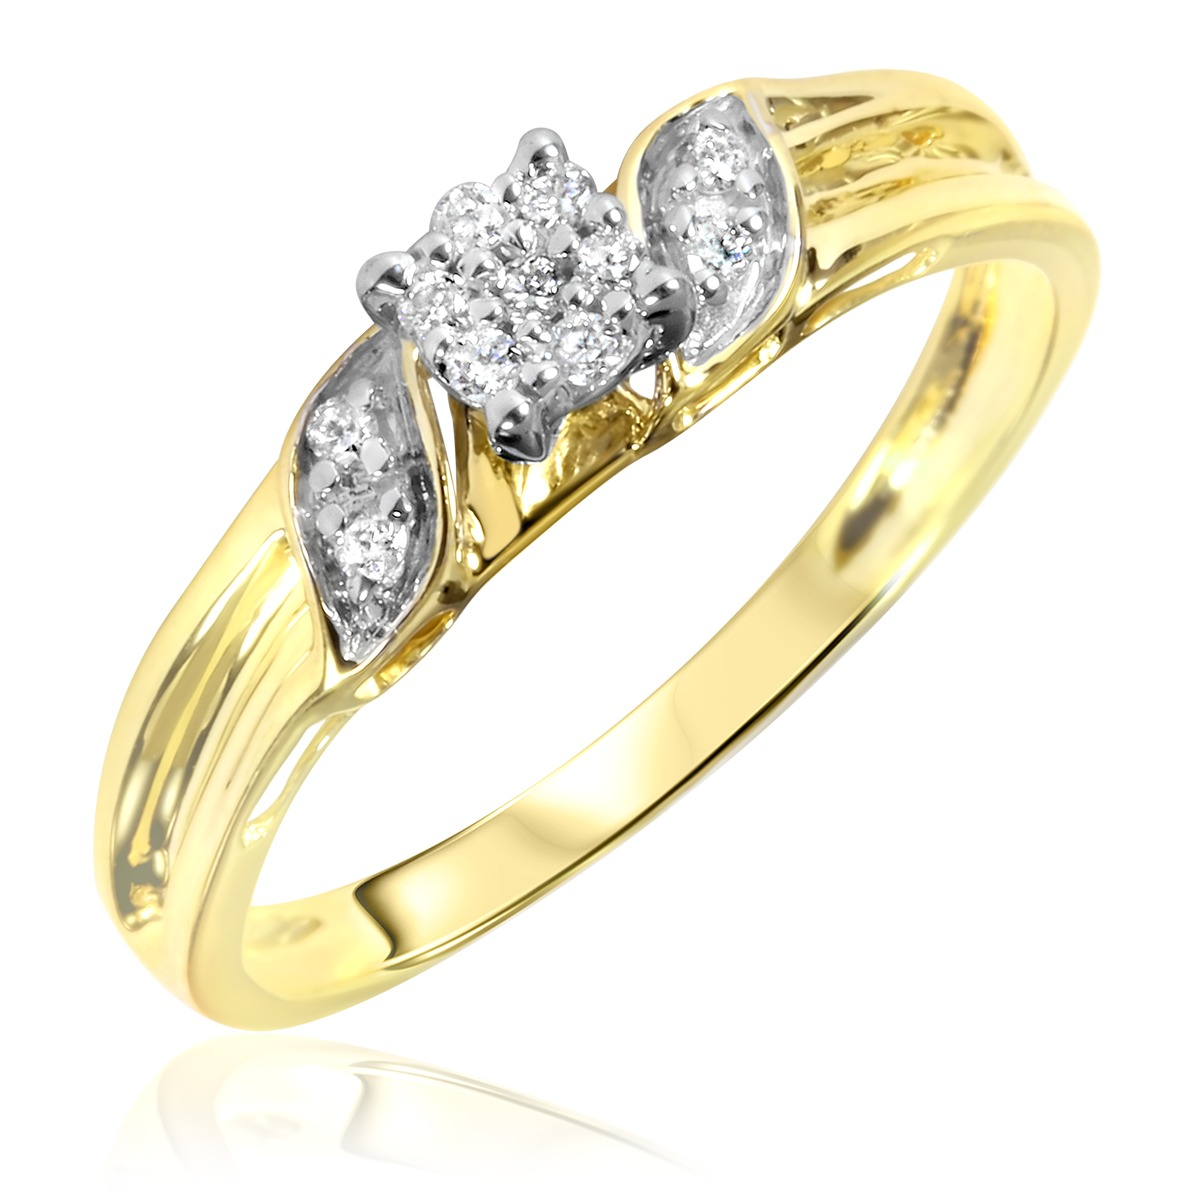 1 10 carat t w diamond women 39 s engagement ring 10k yellow. Black Bedroom Furniture Sets. Home Design Ideas